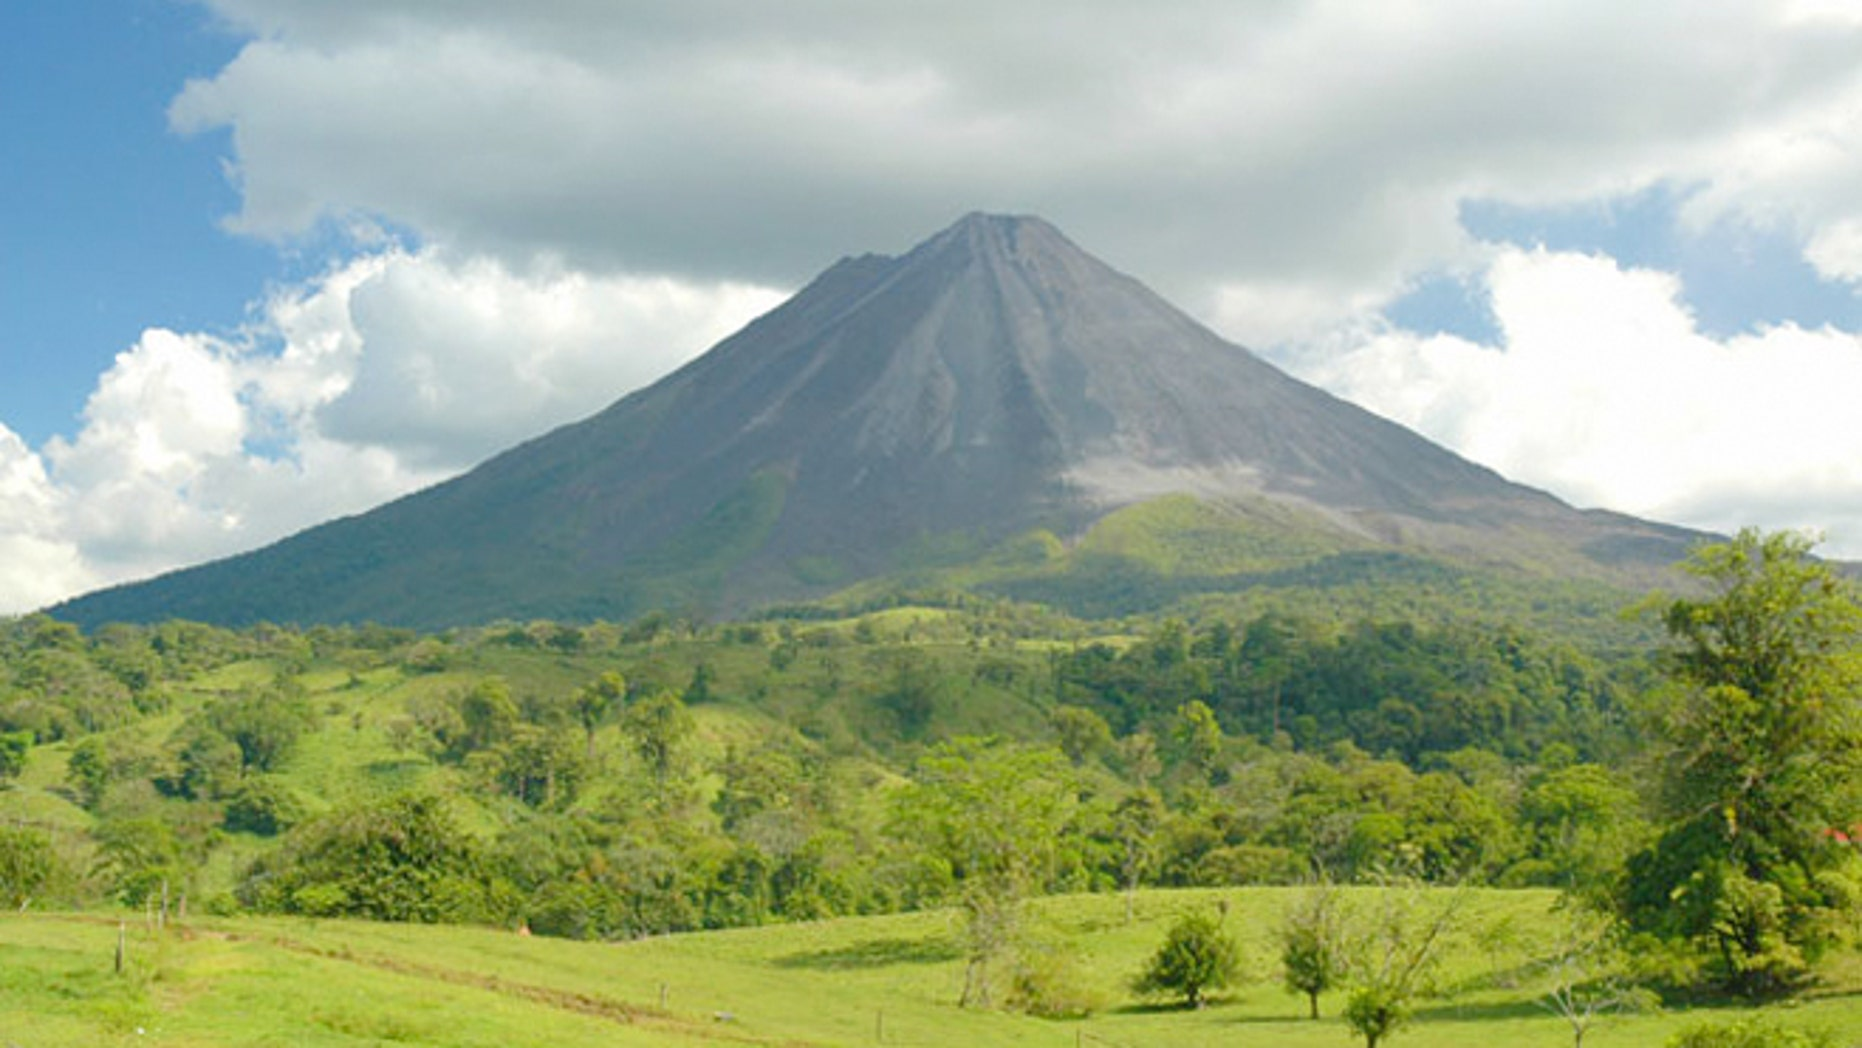 Costa Rica has pristine beaches, lush rain forests, and majestic volcanoes --and plenty of luxury hotspots.